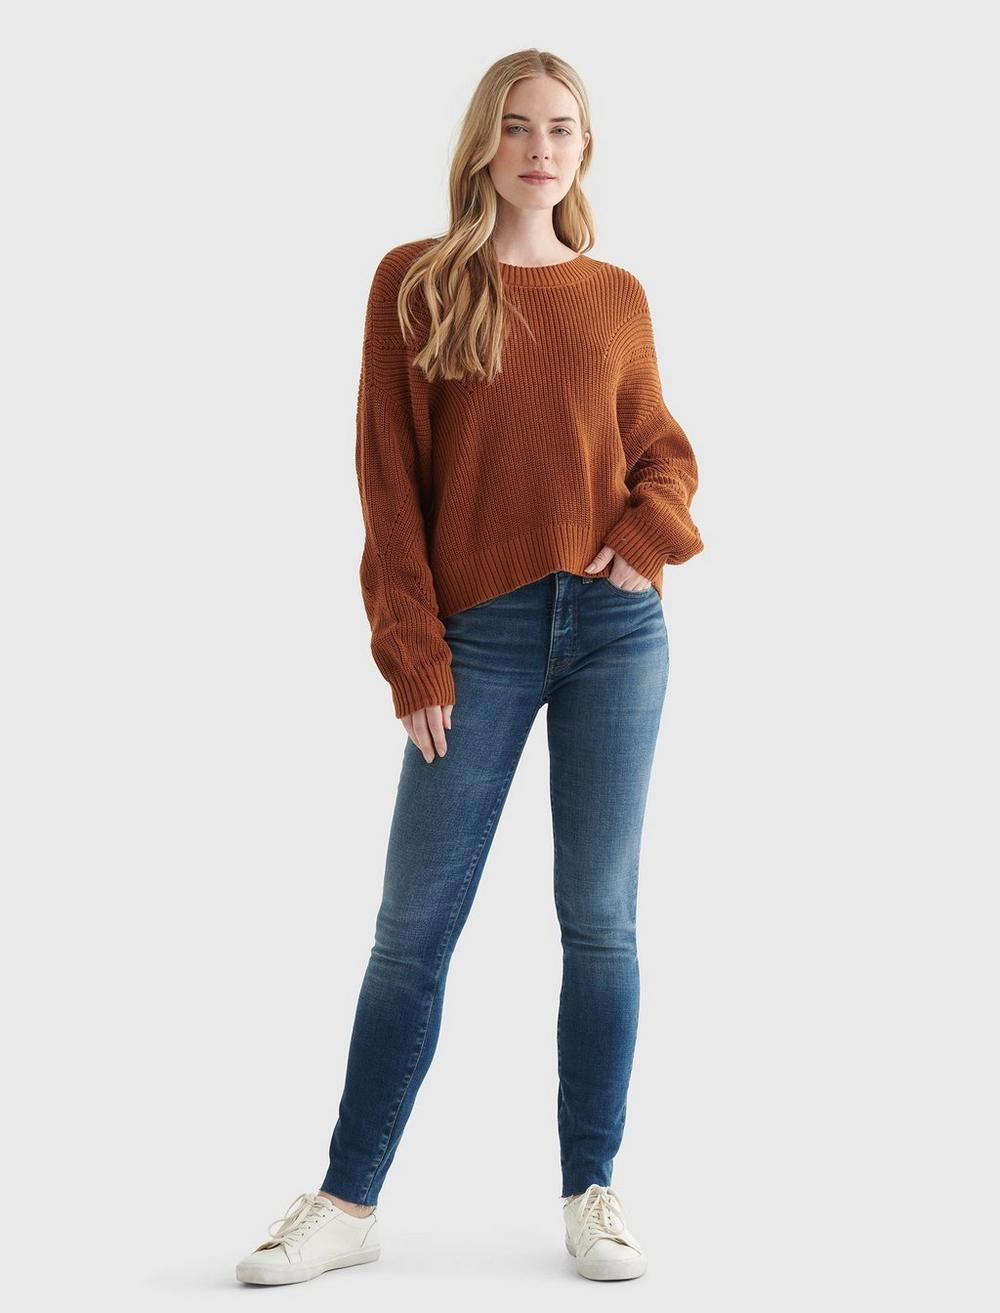 CROPPED RIB-KNIT PULLOVER REVERSIBLE SWEATER, image 2